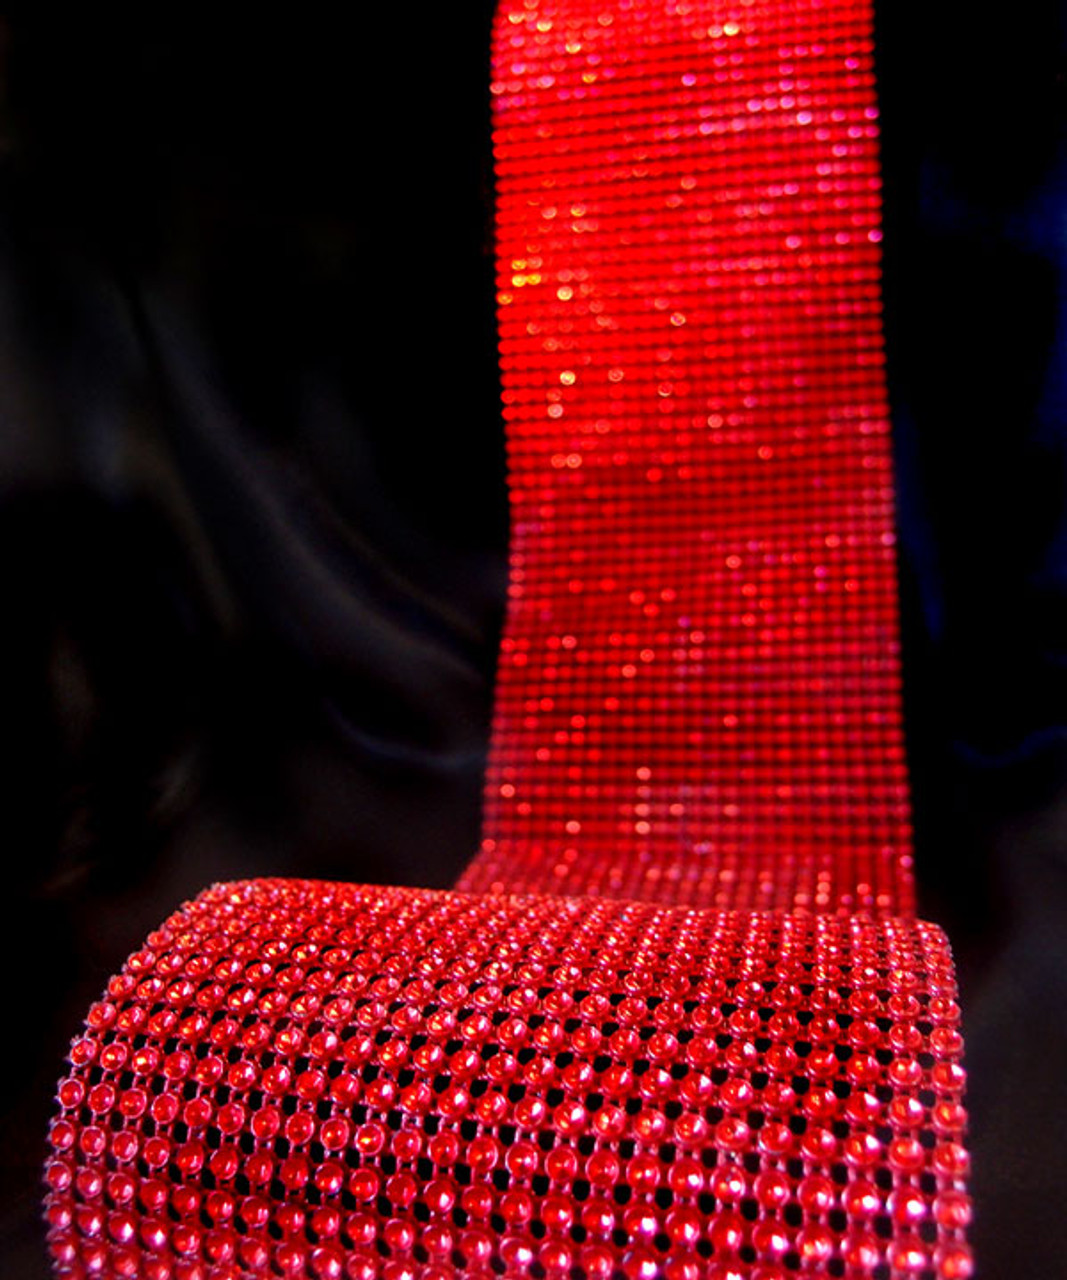 Red Diamond Wrap with Reflective Impressions